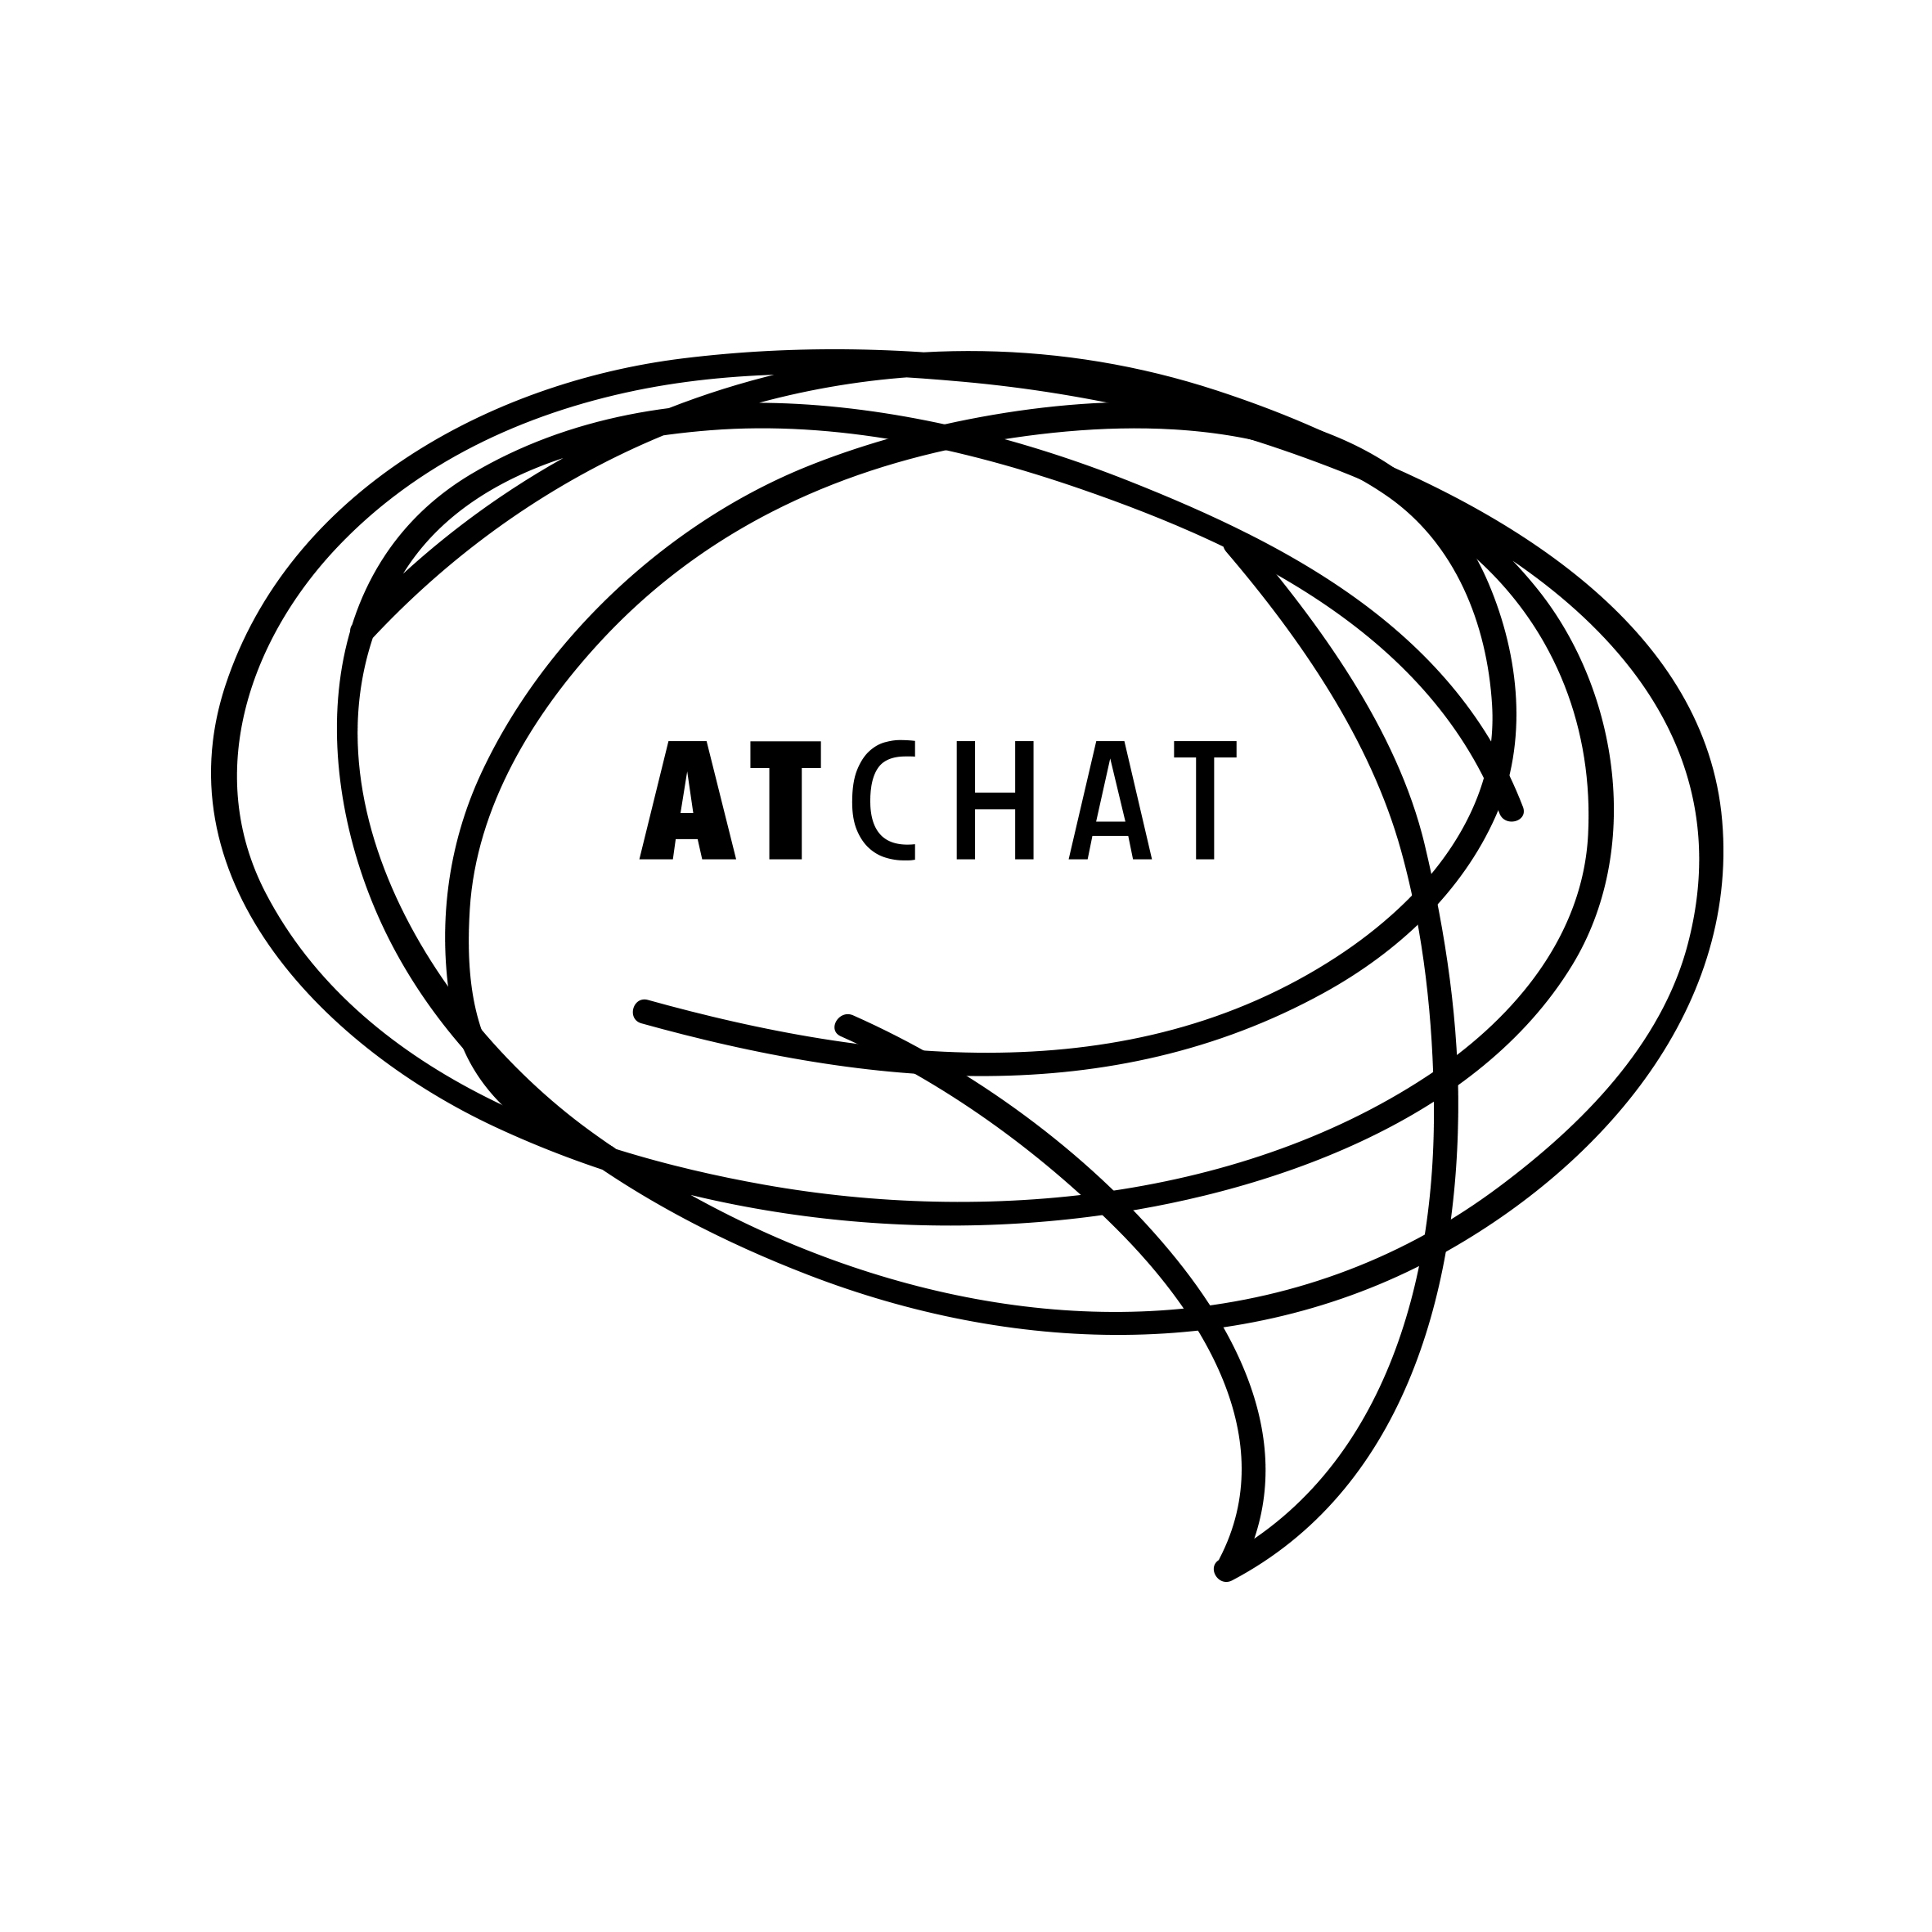 AT Chat logo, speech bubble with at chat written inside